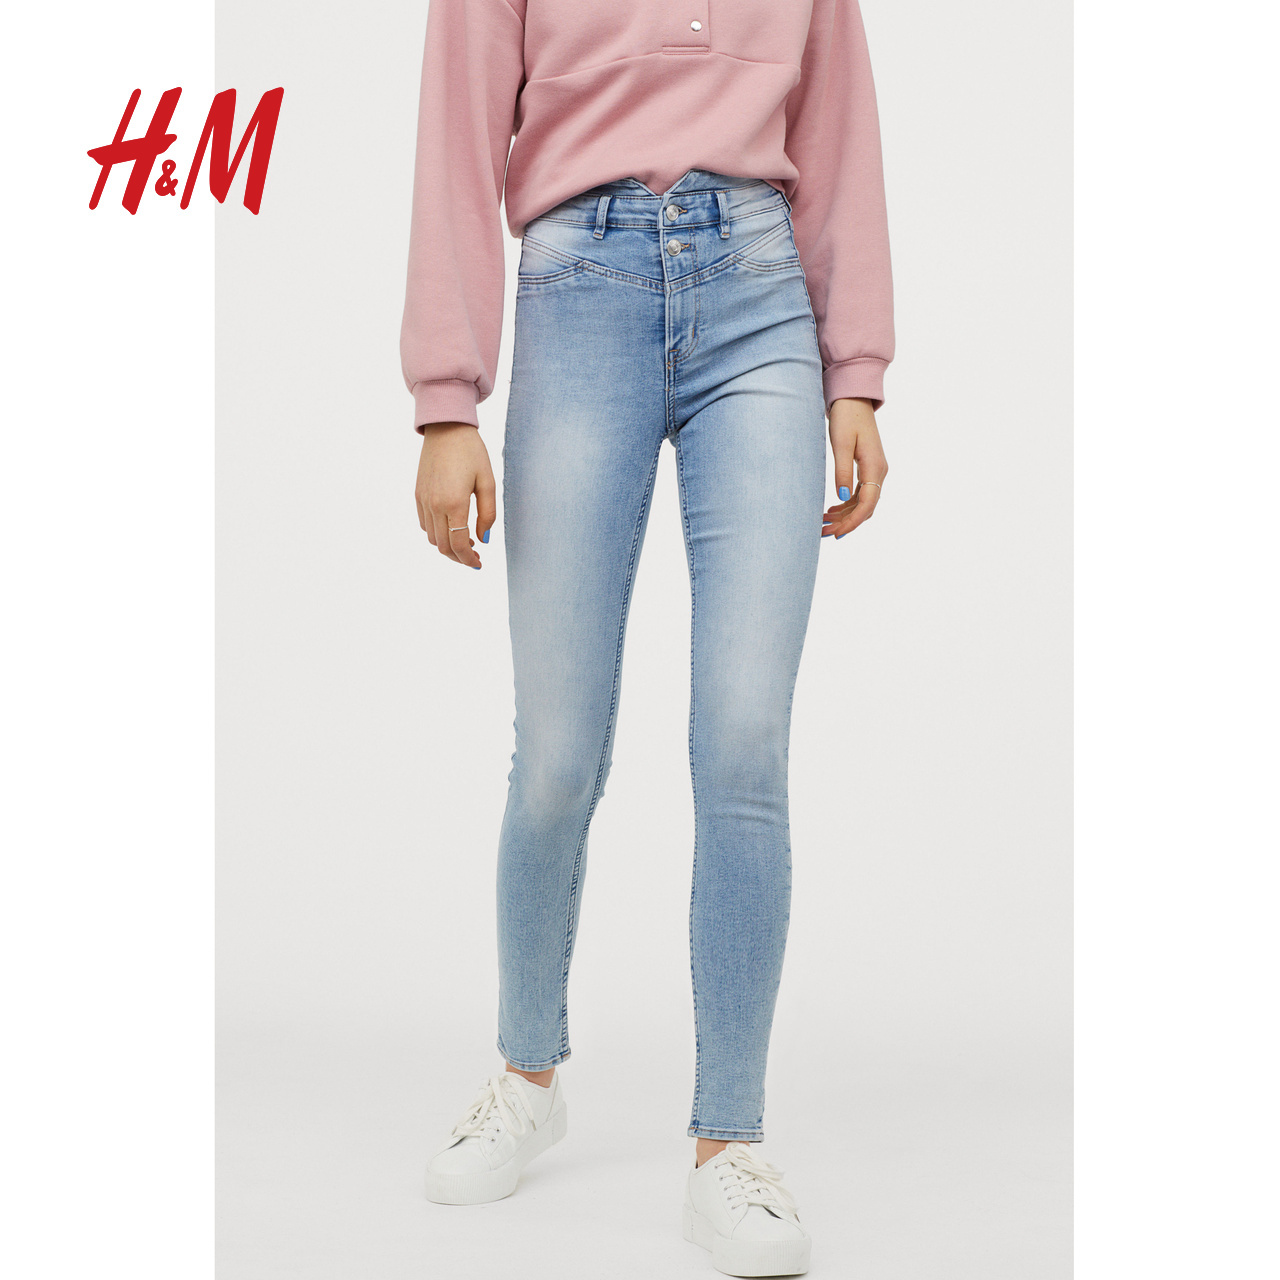 HM devided women's casual pants women's pants 2020 spring new skinny jeans 0851877